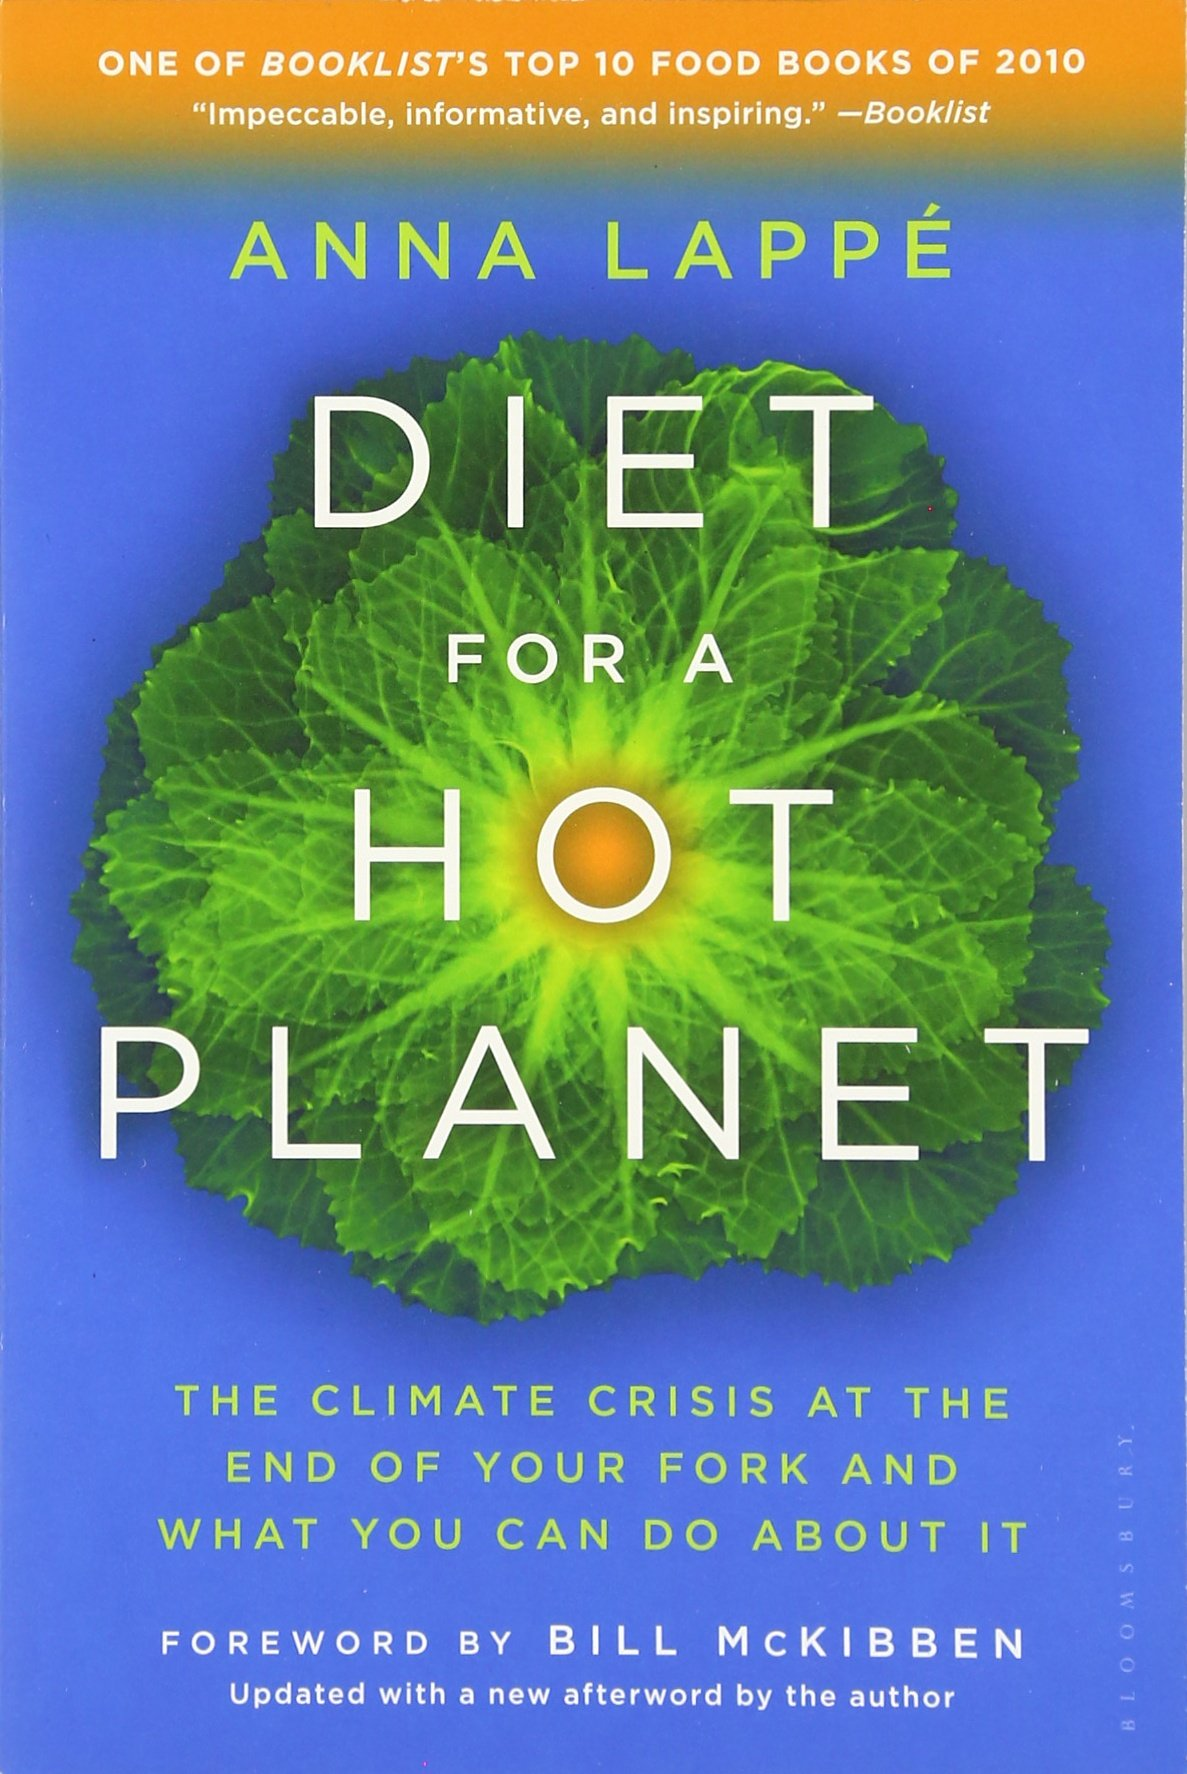 Diet for a hot planet the climate crisis at the end of your fork diet for a hot planet the climate crisis at the end of your fork and what you can do about it anna lappe 9781608194650 amazon books fandeluxe Image collections